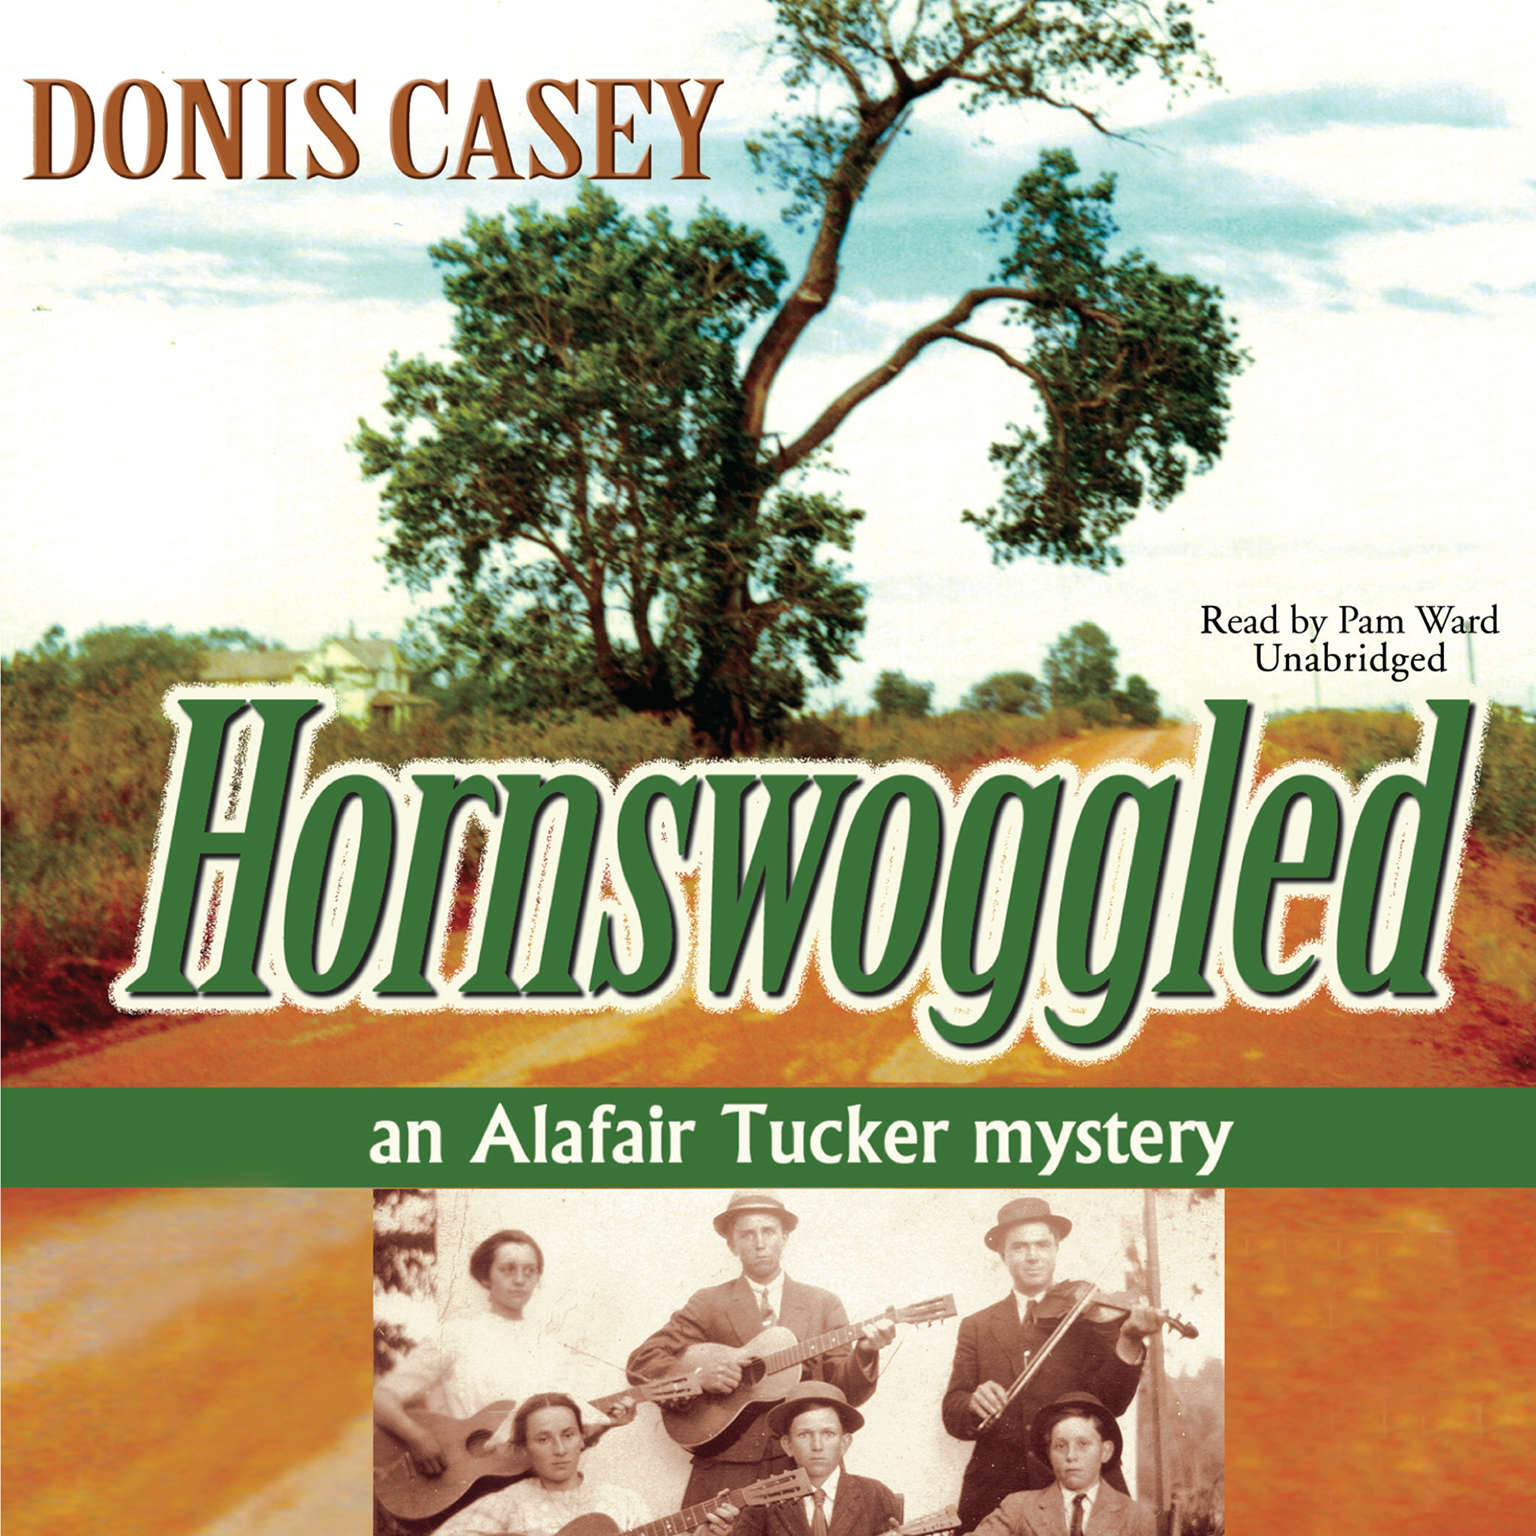 Printable Hornswoggled: An Alafair Tucker Mystery Audiobook Cover Art